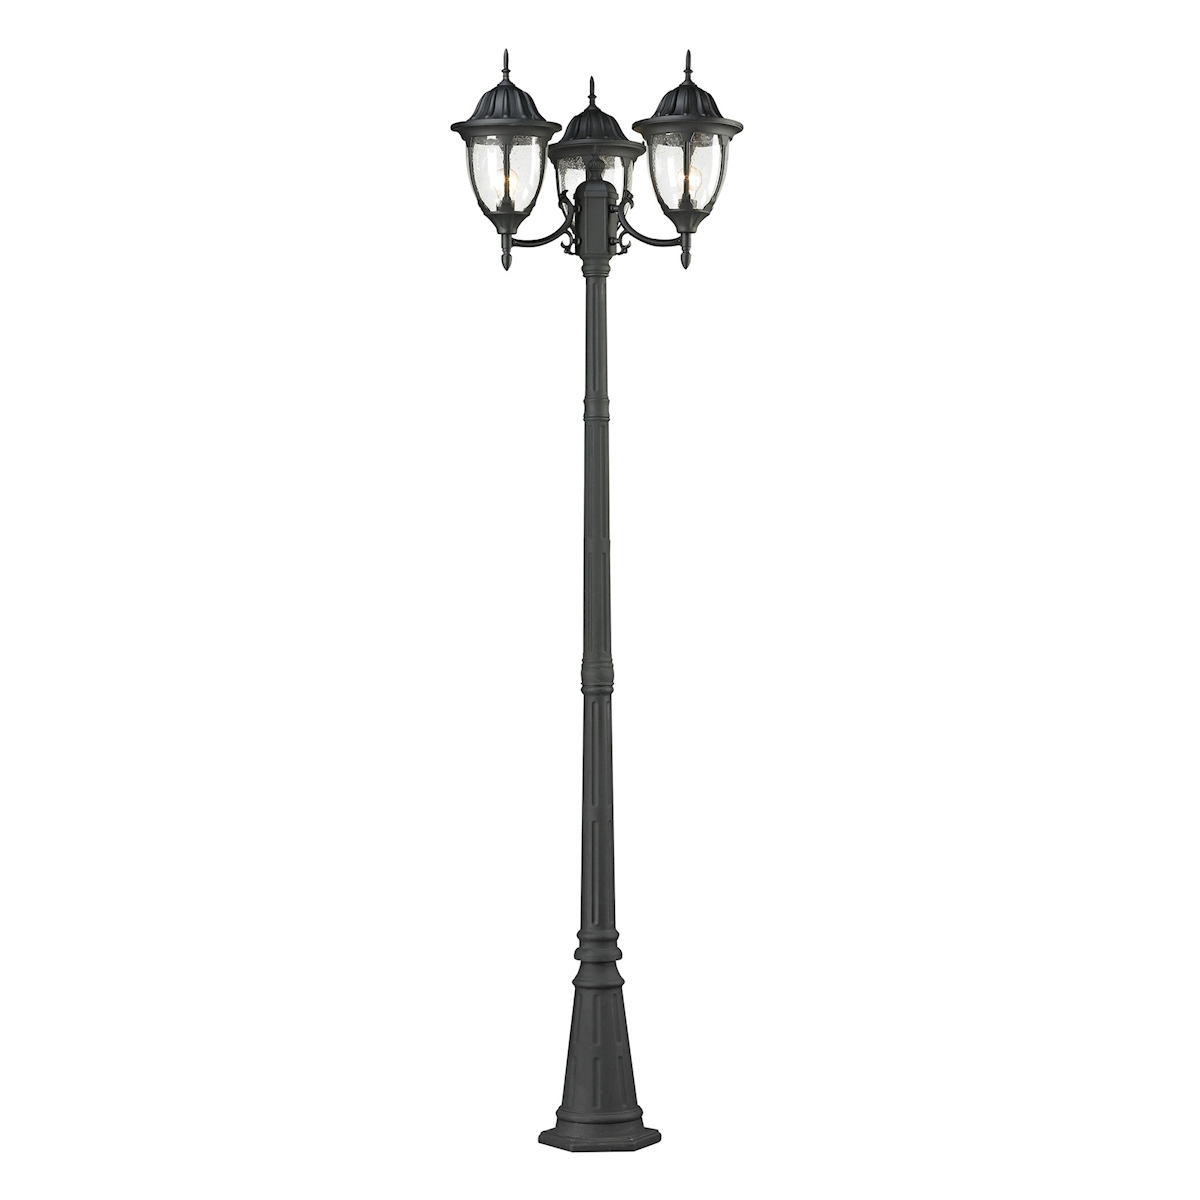 Central Square 3-Light Post Mount Lantern in Charcoal | Thomas Lighting